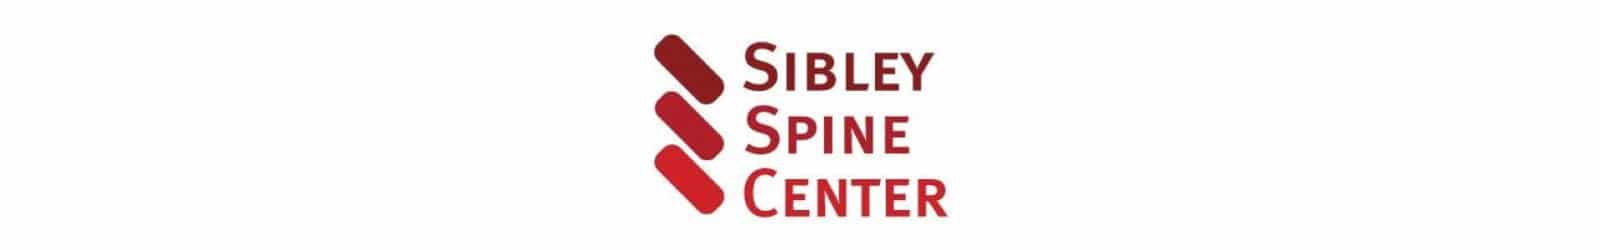 Sibley Spine Center Logo Design